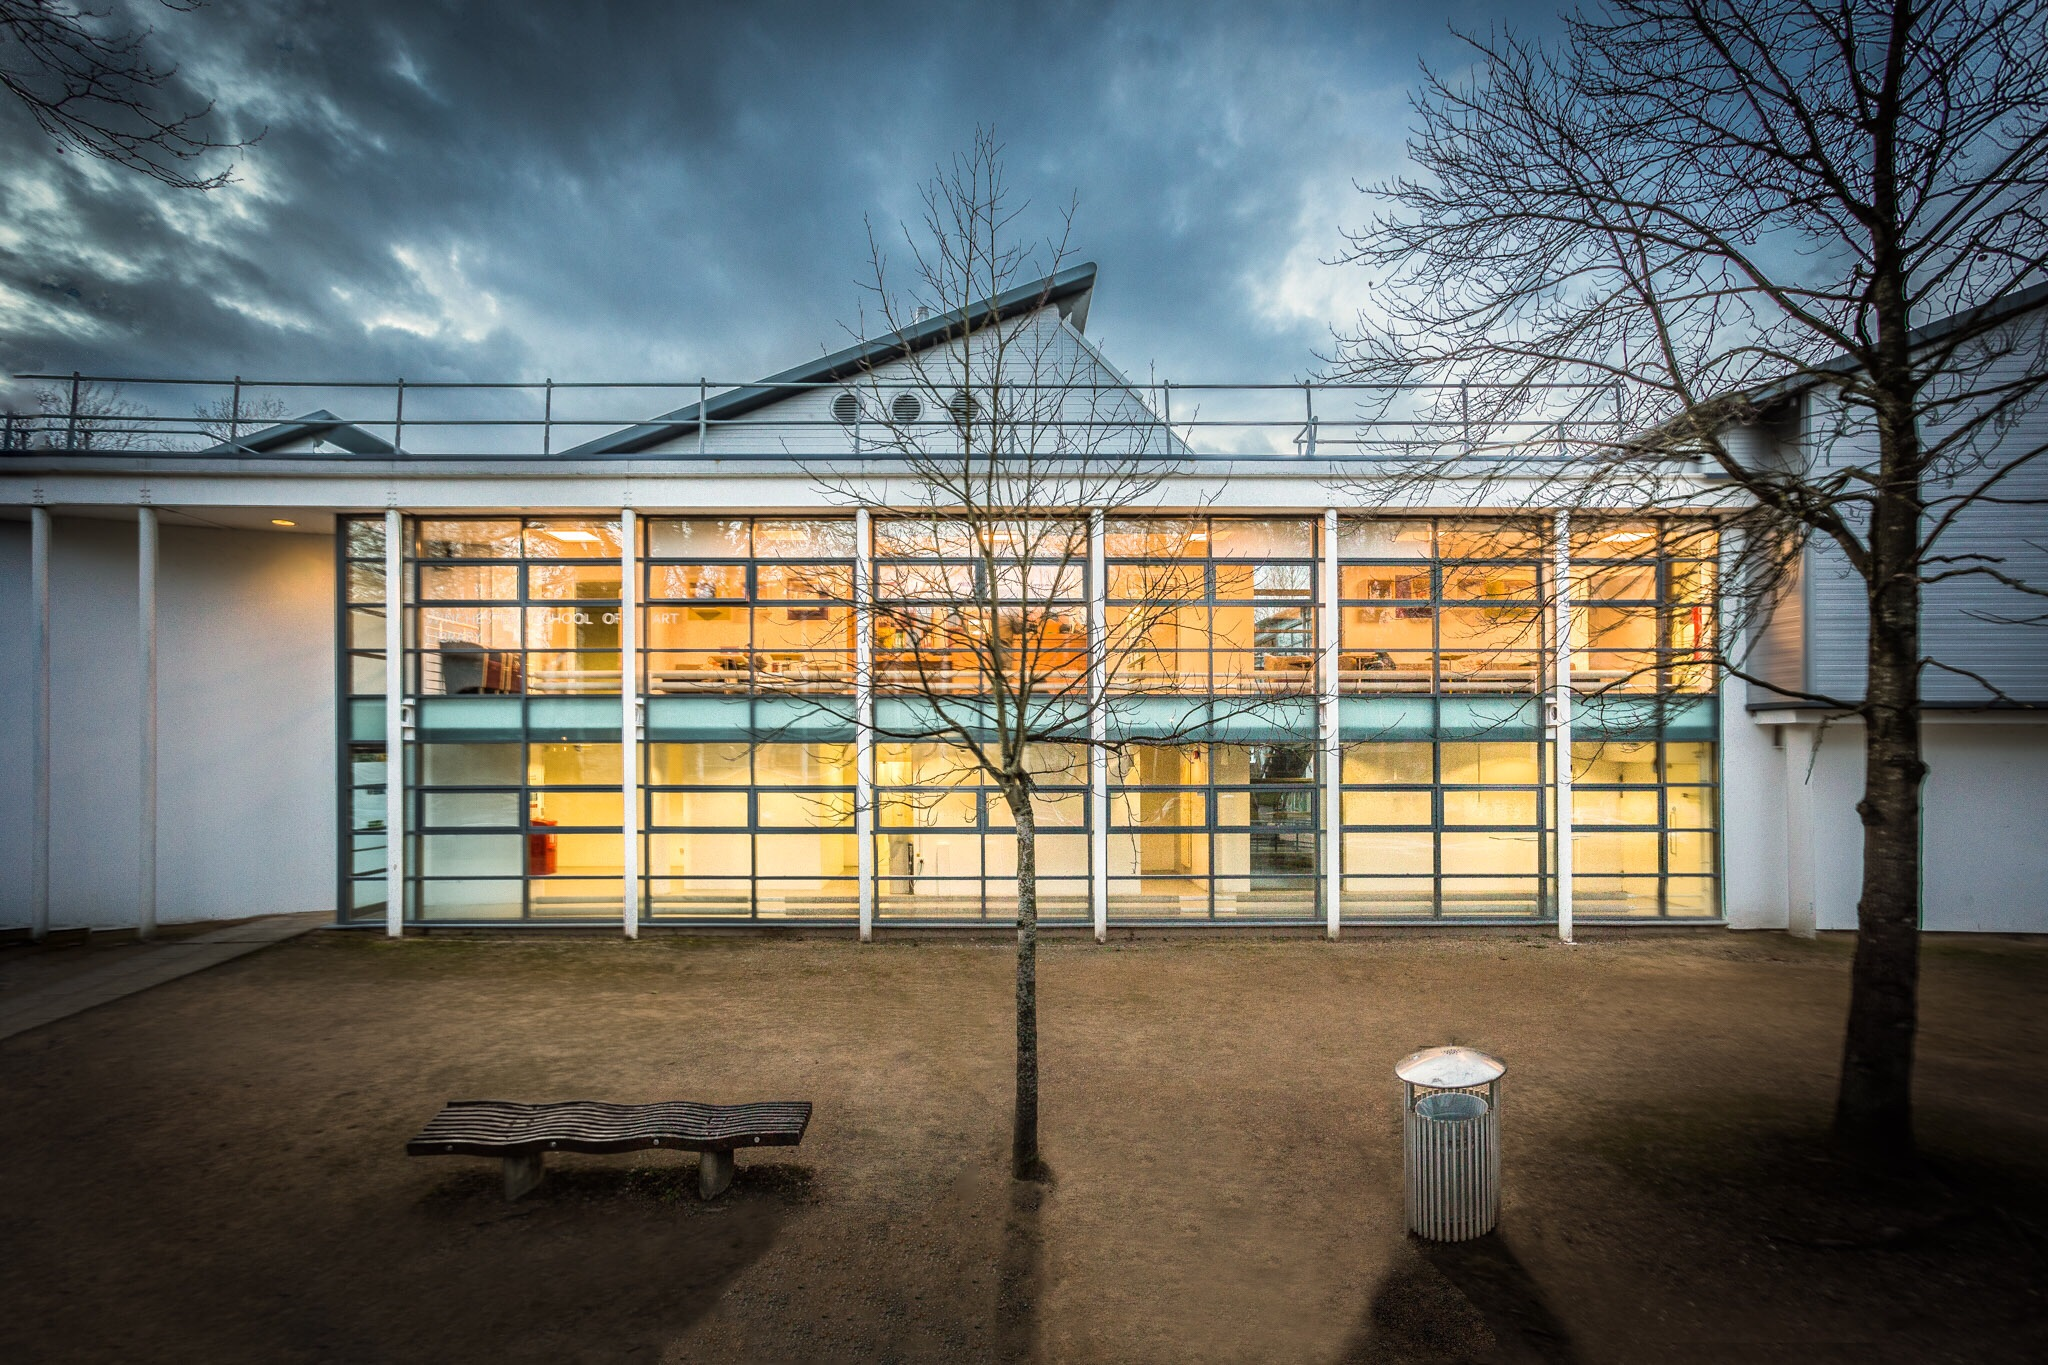 Winchester School of Art, part of the University of Southampton - Architectrual Photography by Rick McEvoy